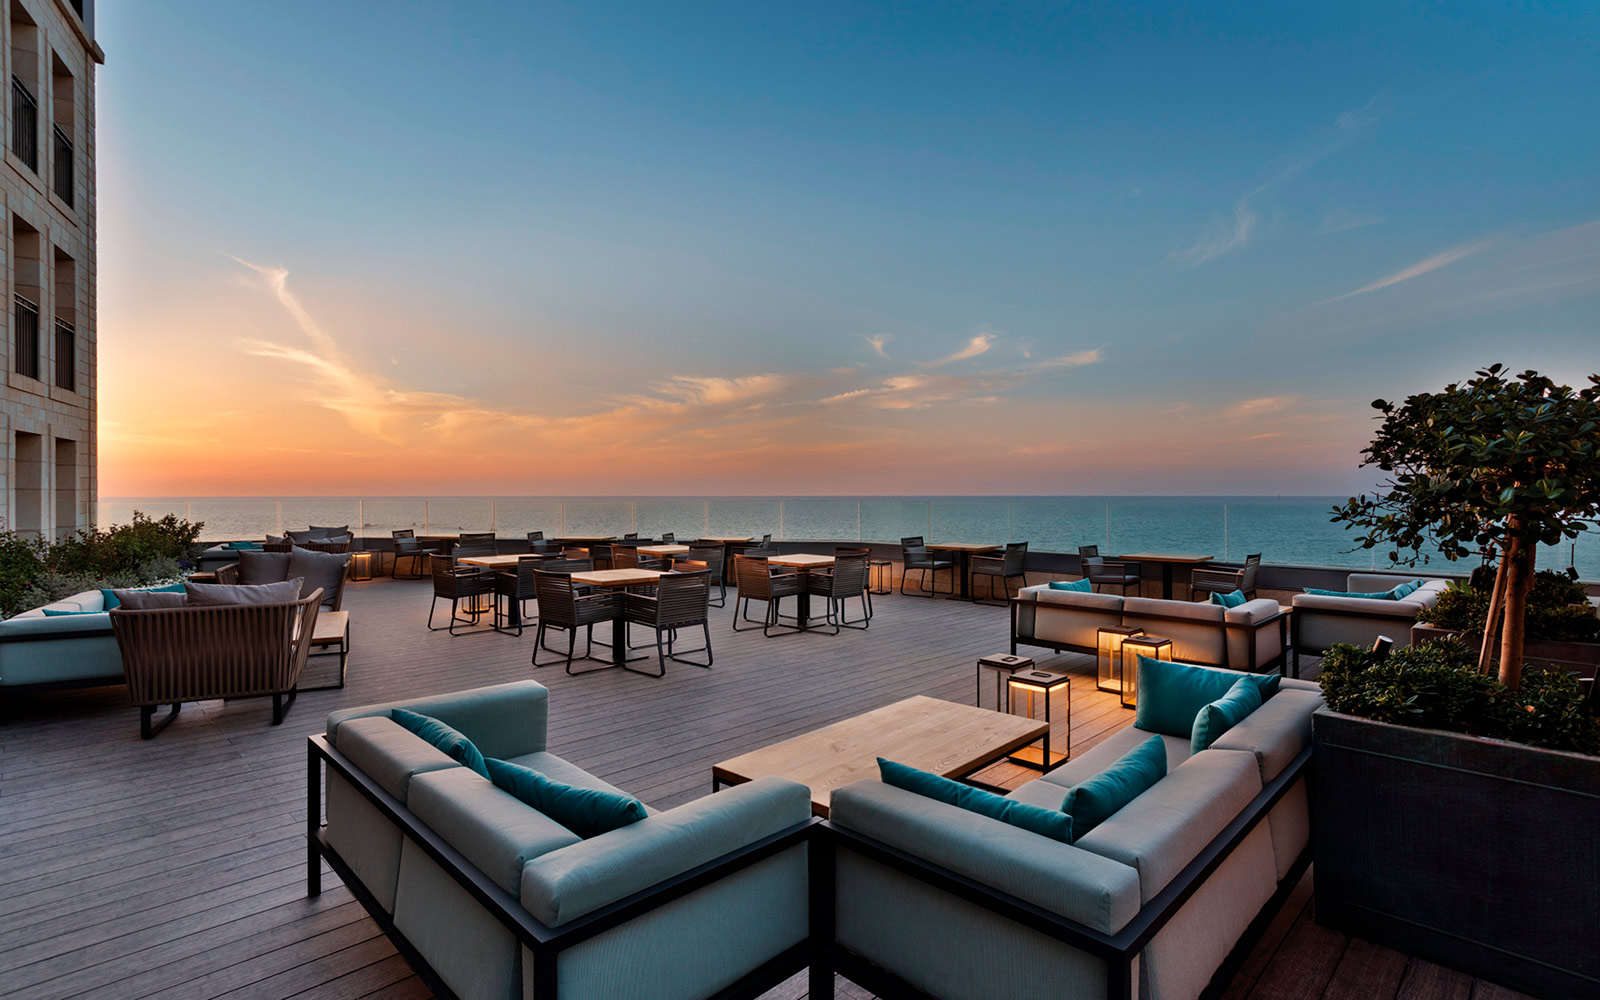 Terrace during sunset at The Setai Tel Aviv